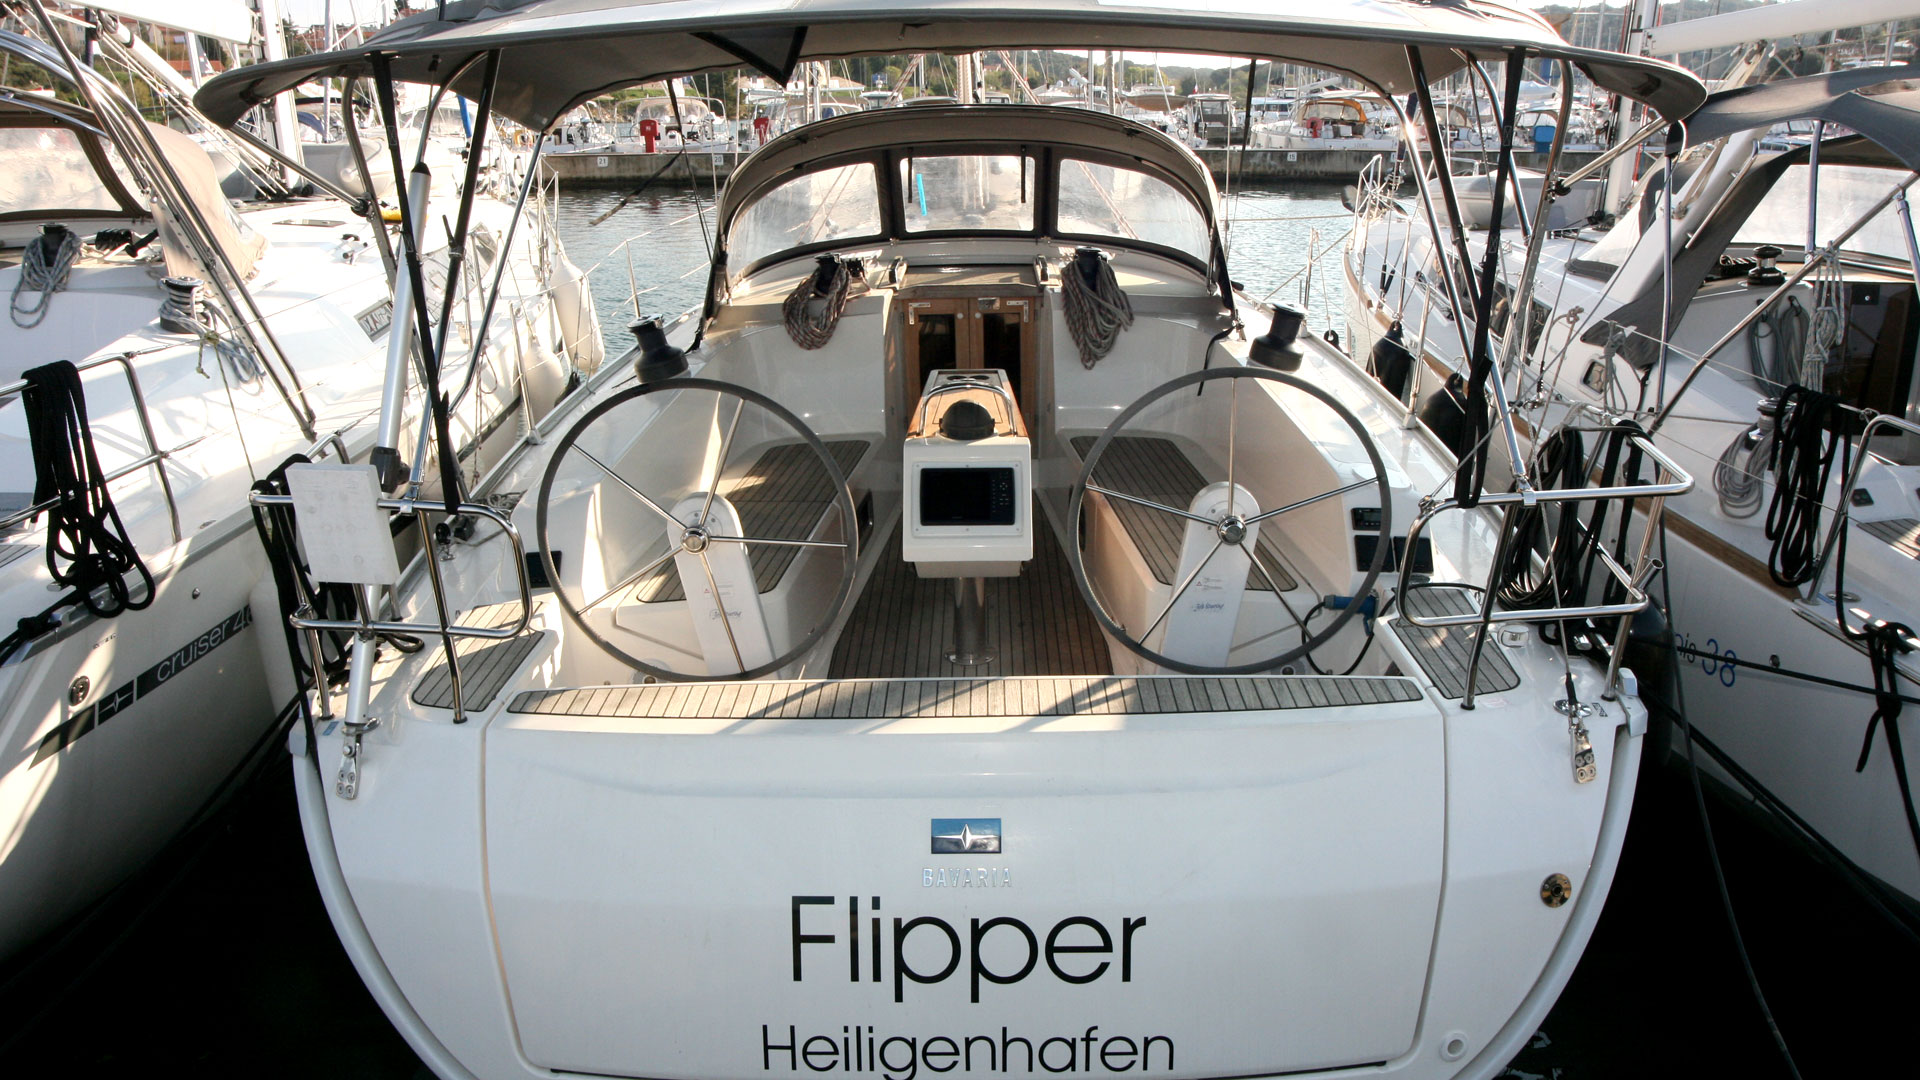 Bavaria Cruiser 41 - 3 cab. - Flipper